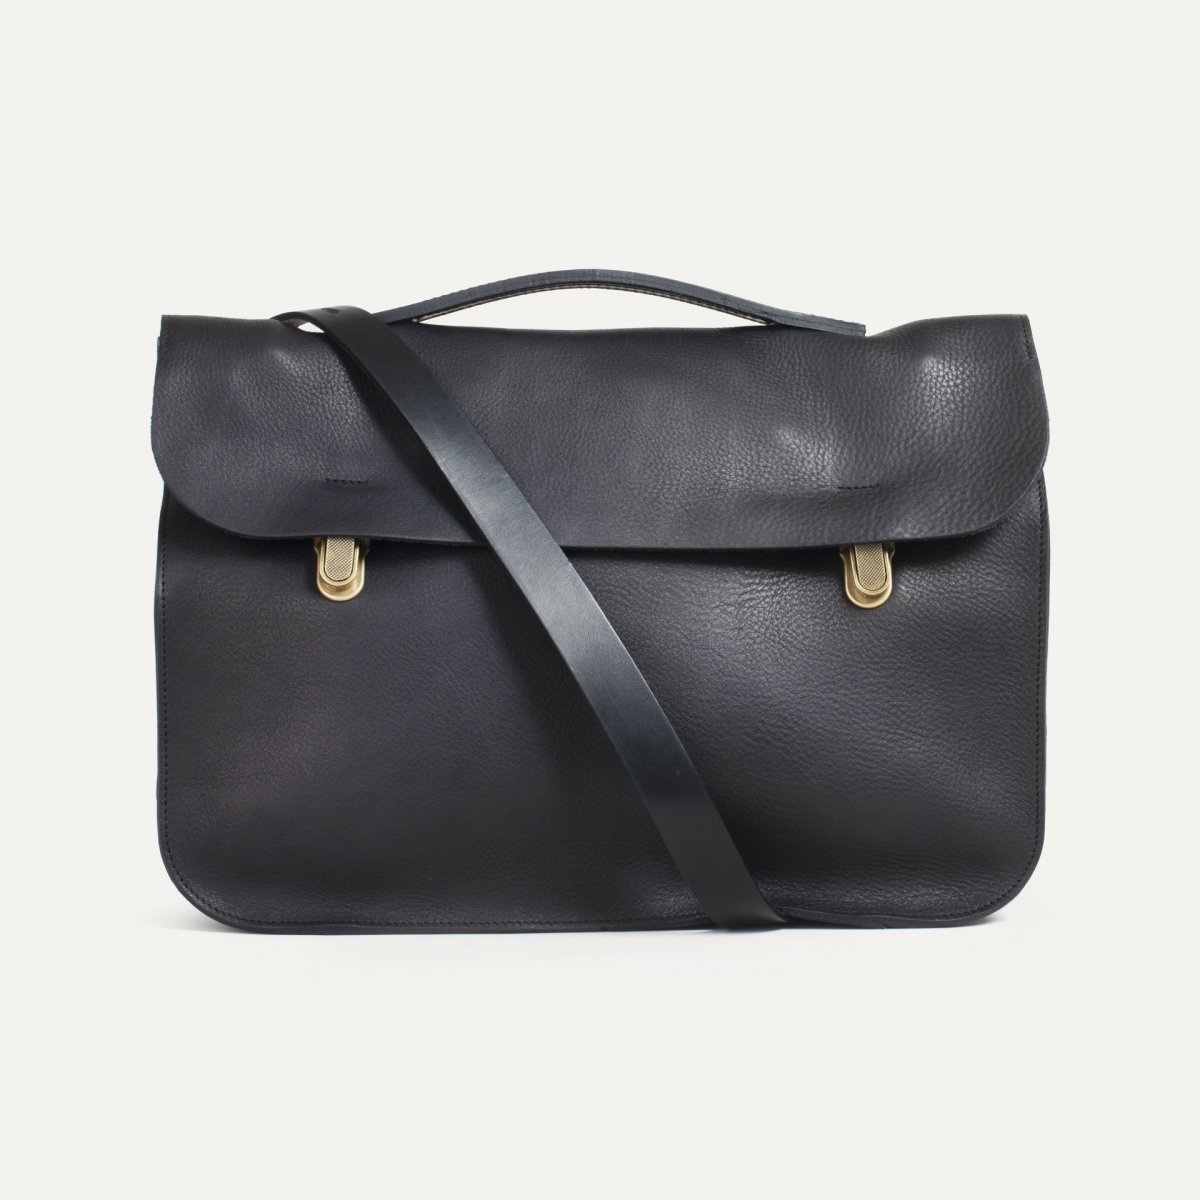 Groucho Leather Satchel - Black / E Pure (image n°1)